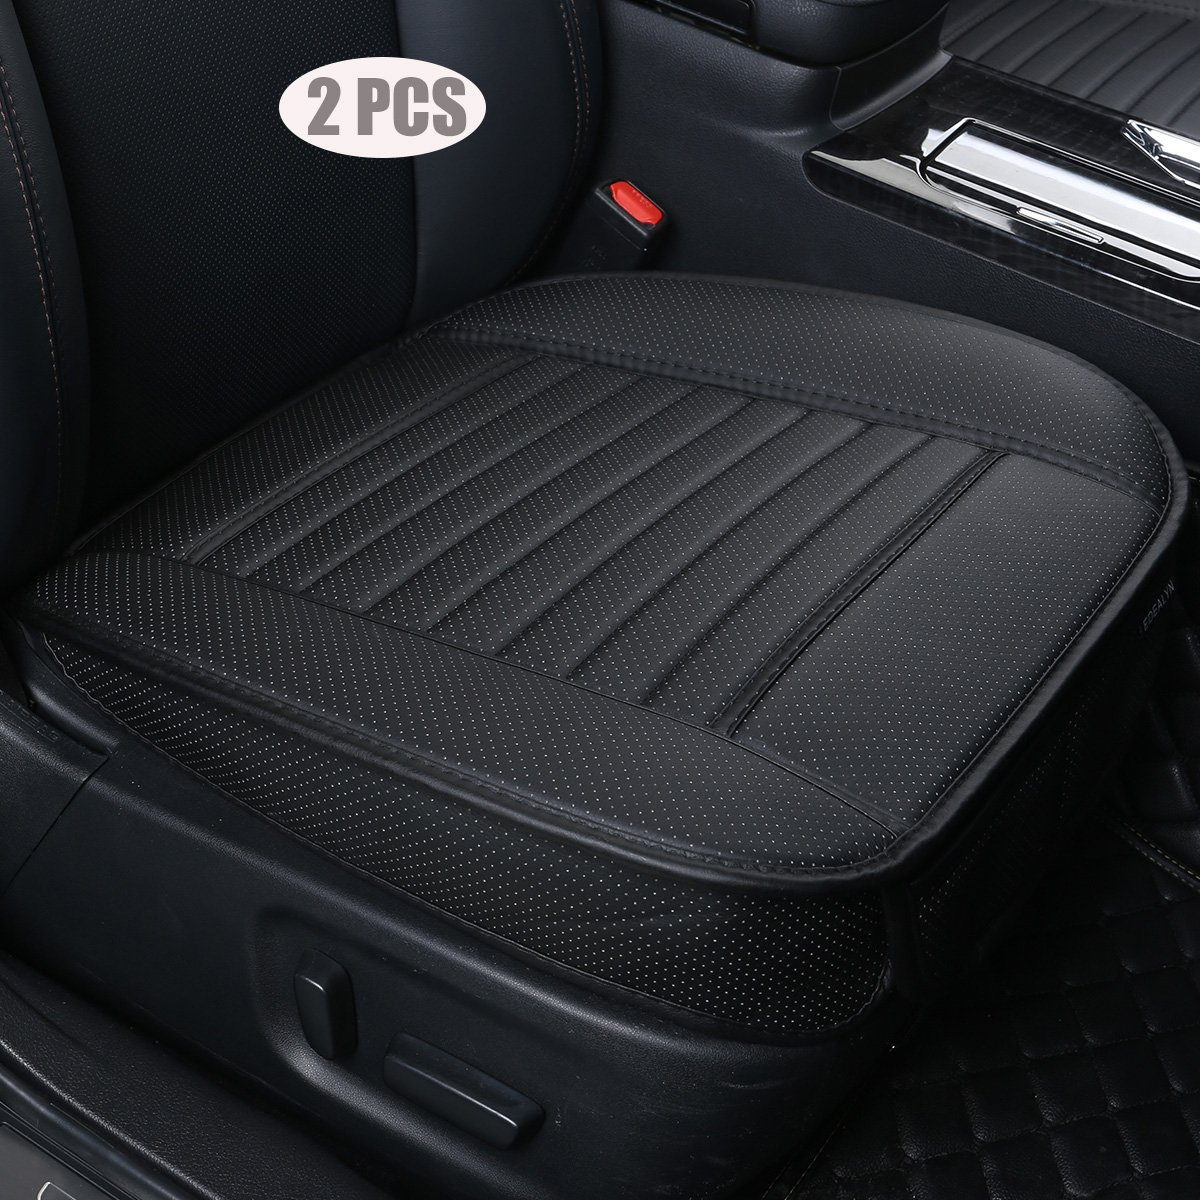 Gray EDEALYN New Car cover interior bamboo charcoal PU Leather Car seat cover seat cushion for Car Single seat without backrest 1pcs